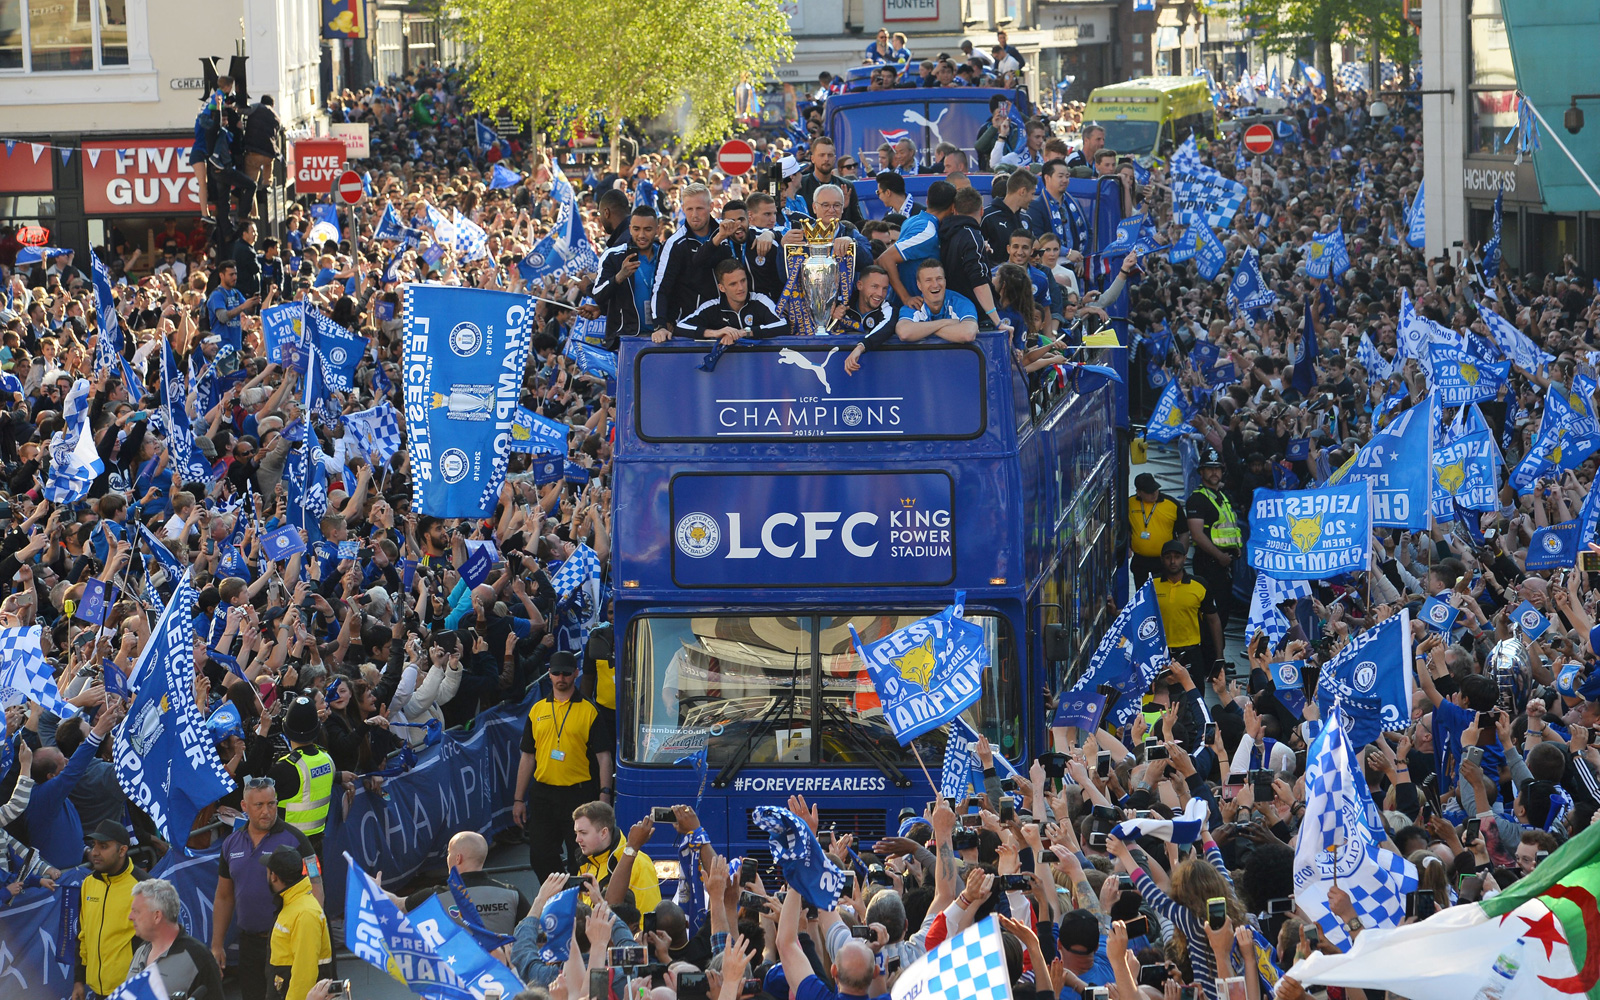 Leicester City enjoys a parade through a packed downtown, gathering with fans for one massive celebration for its title season.